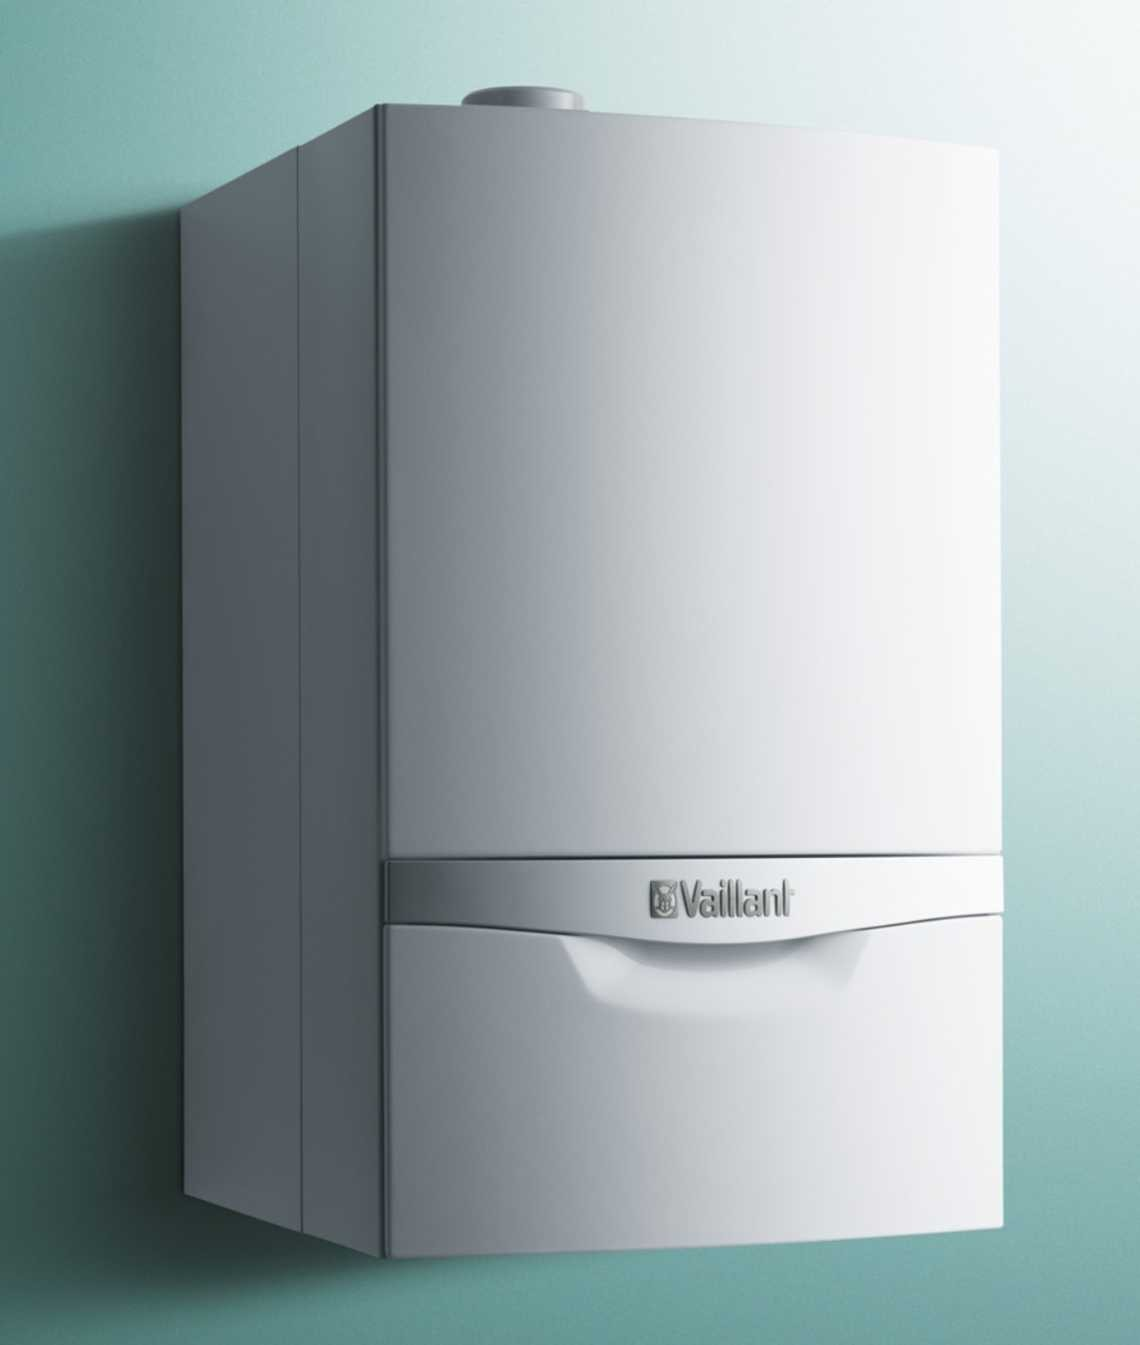 Газовий котел Vaillant ecoTEC Plus VUW INT 246/5-5 H - Теплоцентр